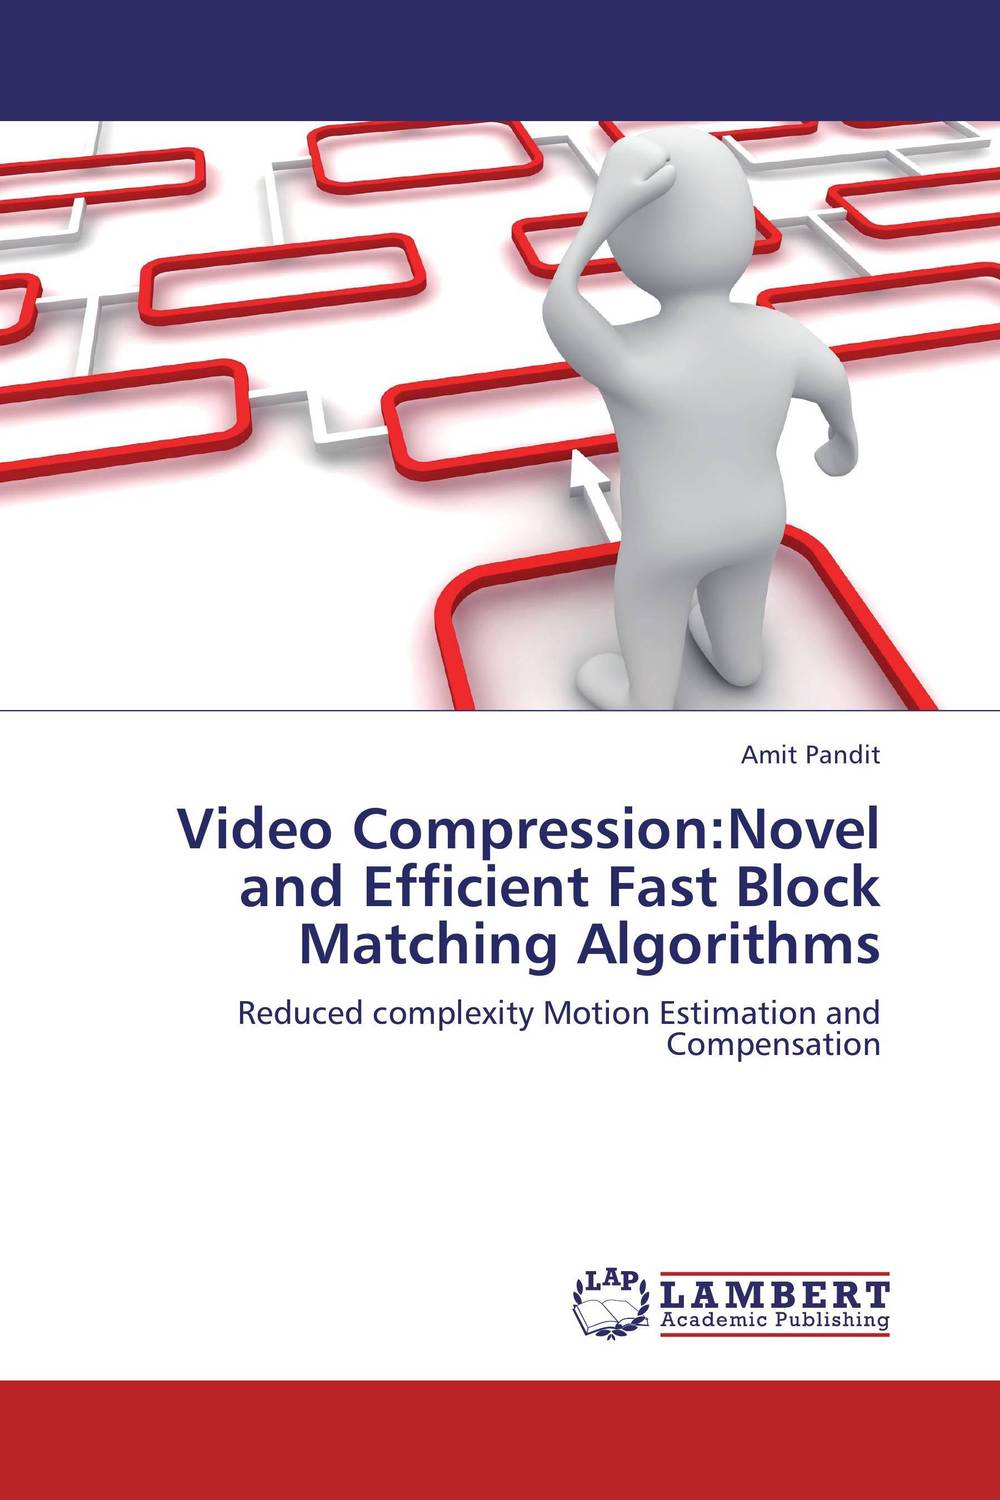 Video Compression:Novel and Efficient Fast Block Matching Algorithms manpreet kaur saini ravinder singh mann and gurpreet singh an efficient lossless medical image compression